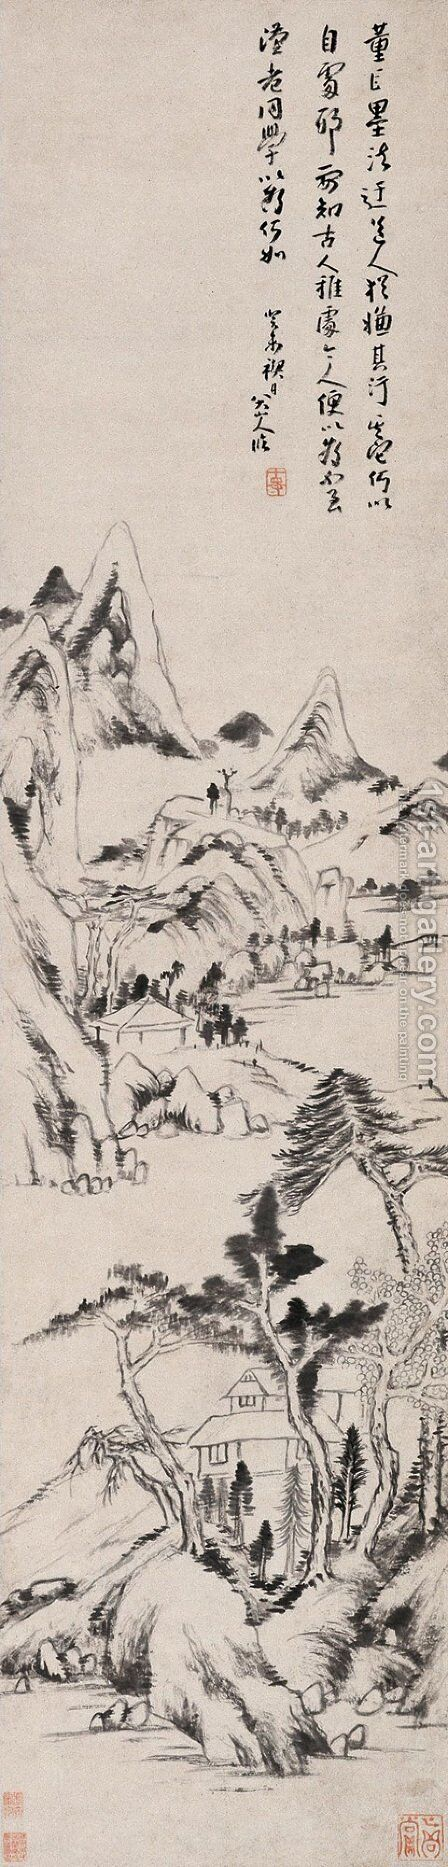 Landscape (Dong Yuan and Juran Style) by Bada Shanren - Reproduction Oil Painting